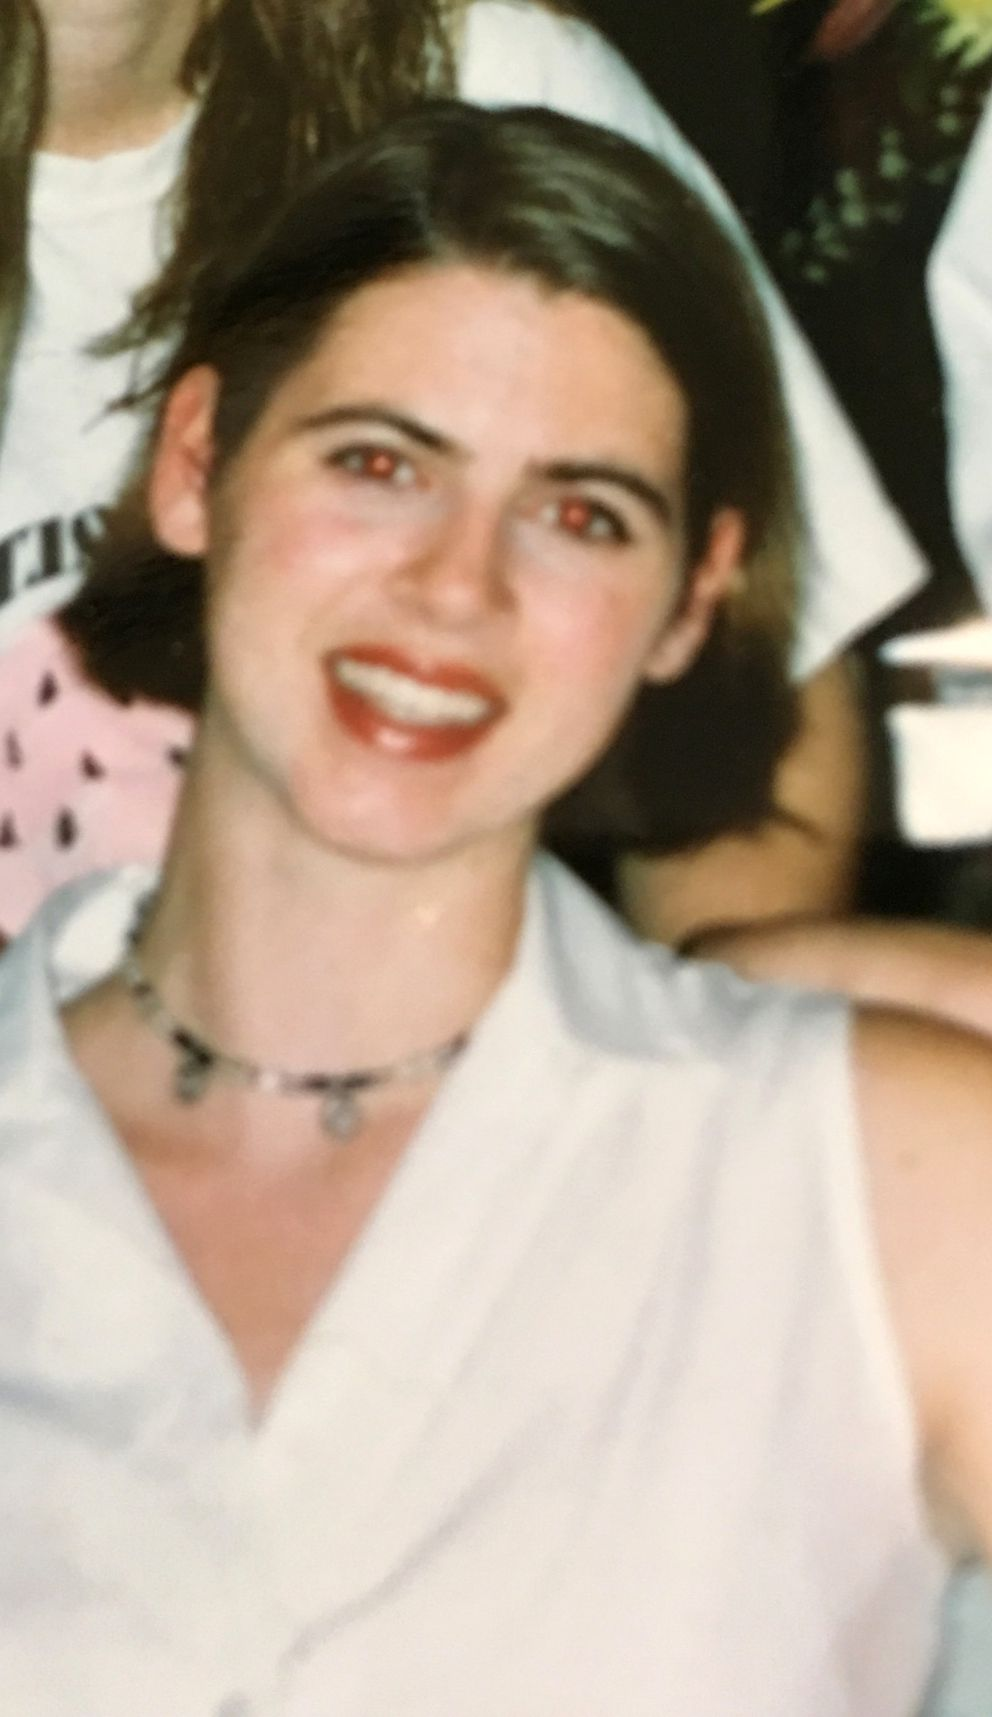 Erin Gilbert went missing in 1995 after attending the Girdwood Forest Fair. Her family is trying to resurrect her missing persons case. (Courtesy Stephanie Juarez)